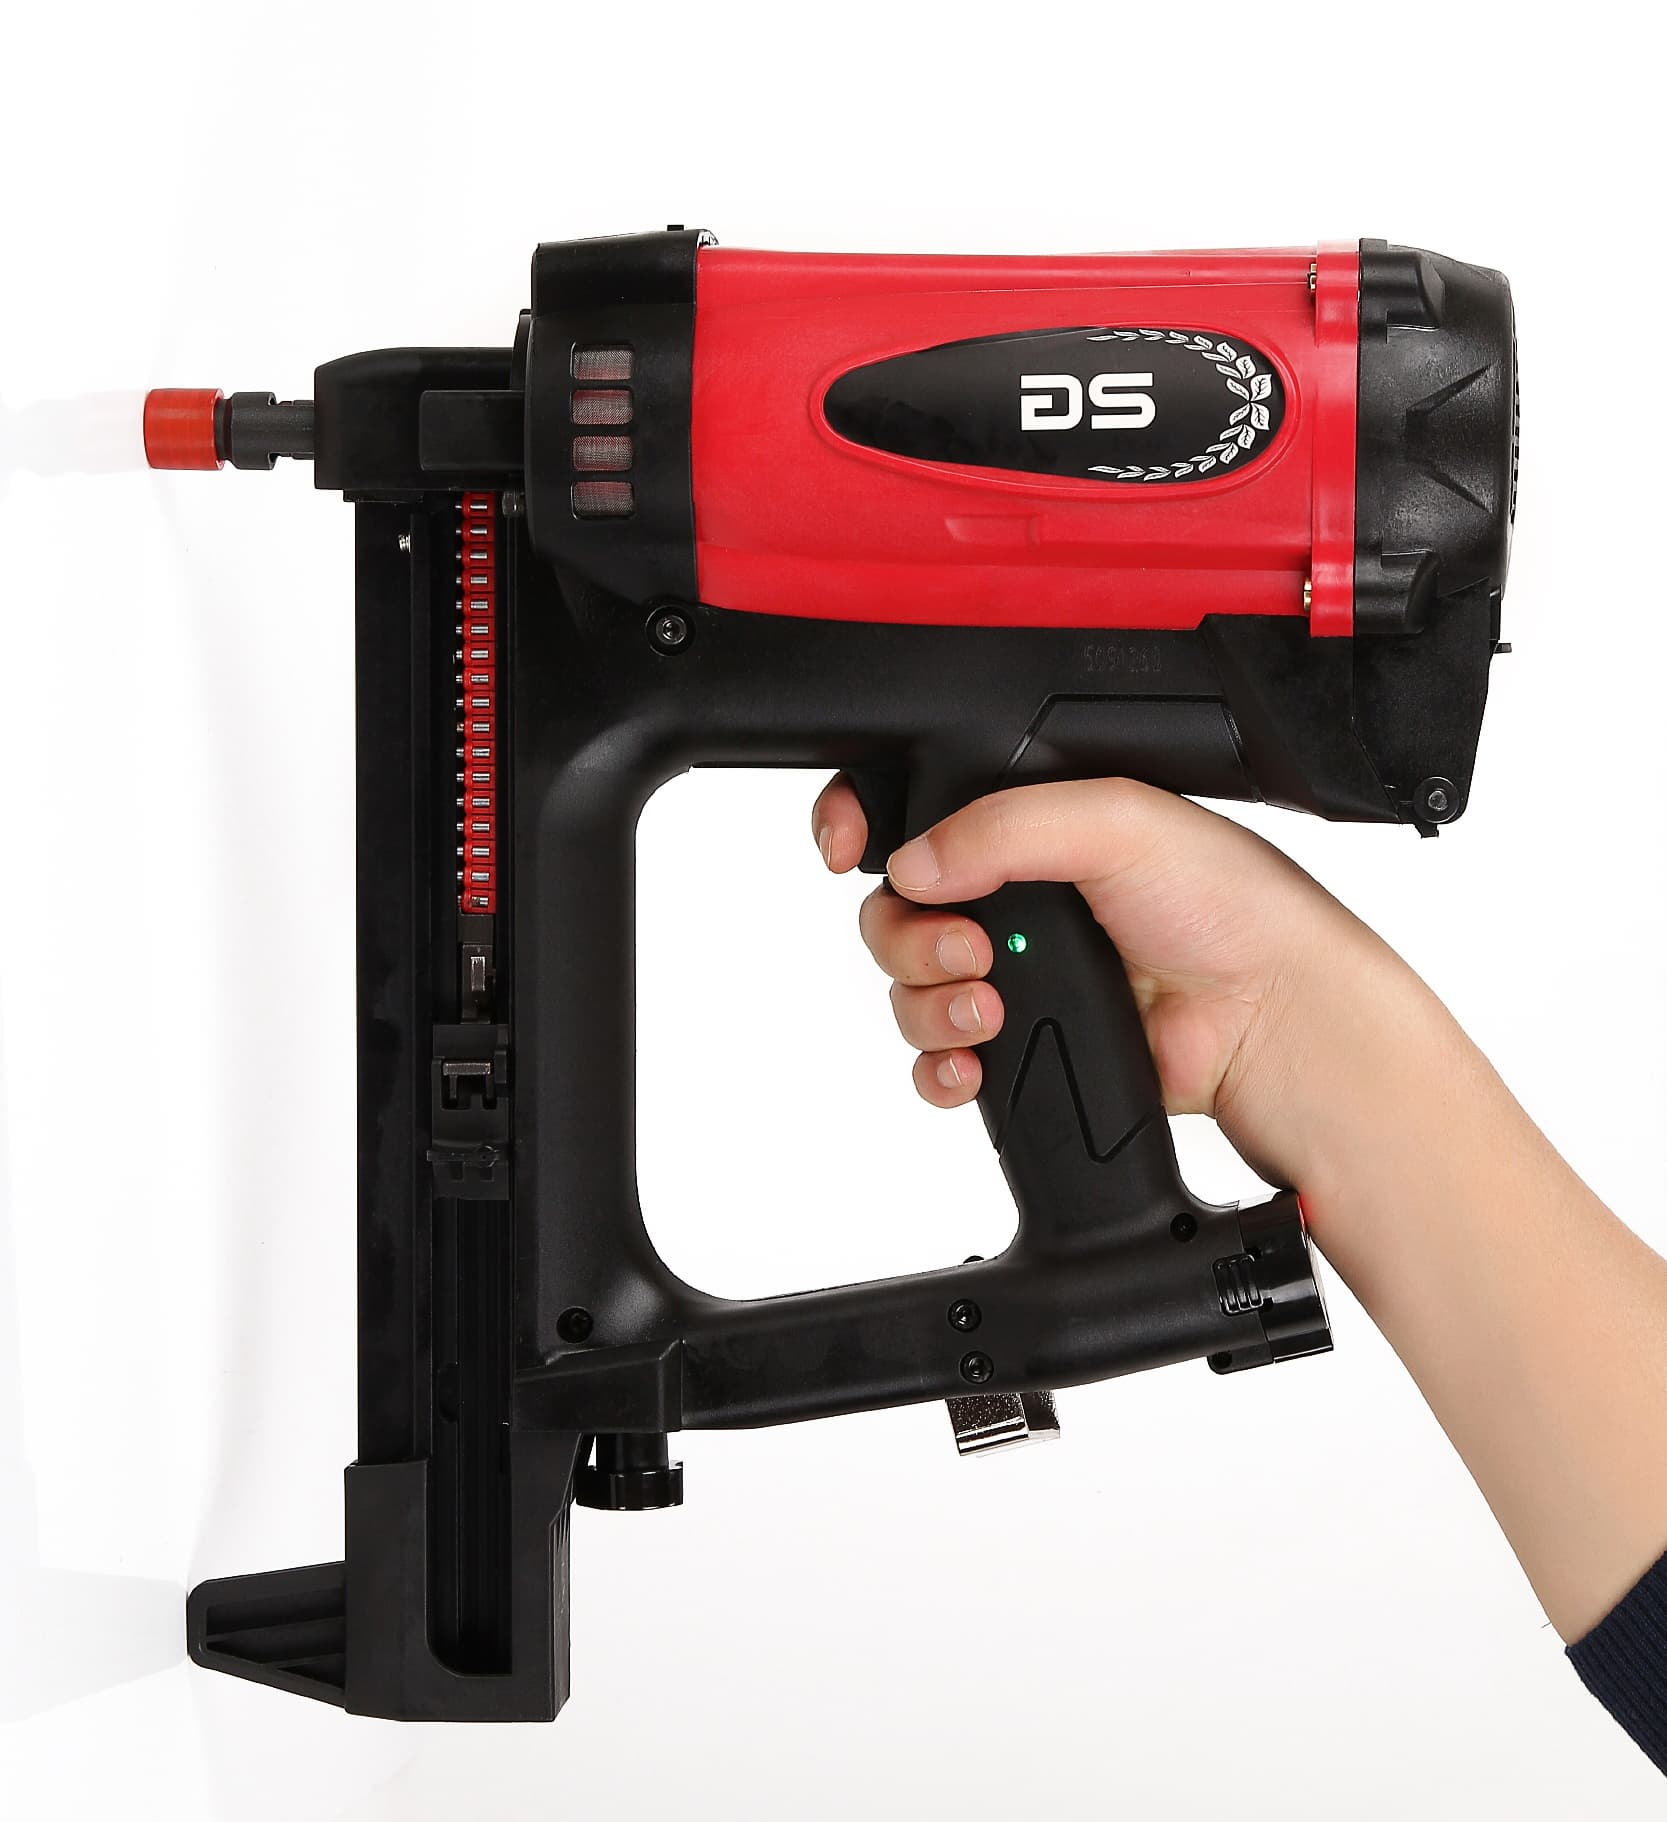 Gas Powered Cordless Concrete Nail Gun Tradekorea